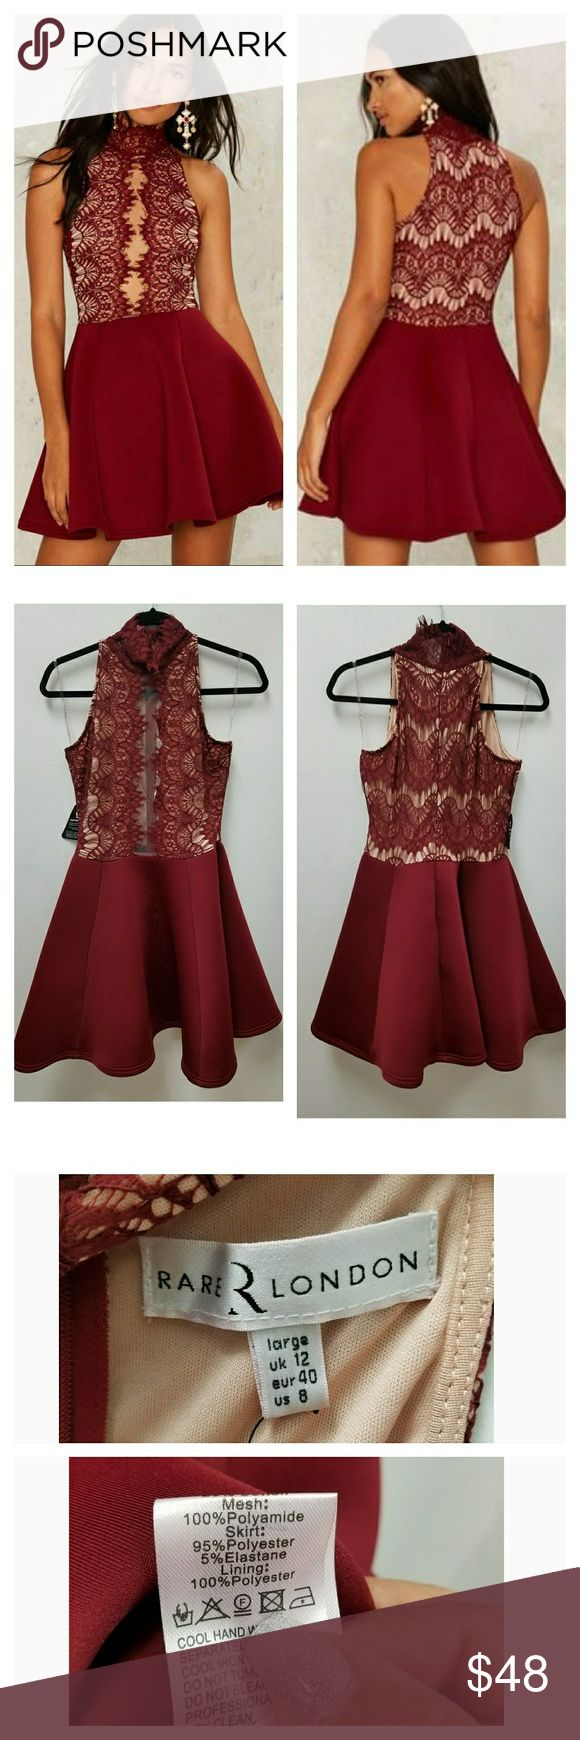 NASTY GAL THE HOLD COURT DRESS The Hold Court DRESS is burgundy and features a scuba skirt, lace bodice, mock neck, enclosed zipper at back, and partial nude lining. By RARE LONDON | Sold out at nasty gal. Item may or may not have tags but is new and never worn boutique item. NASTY GAL  Dresses Mini